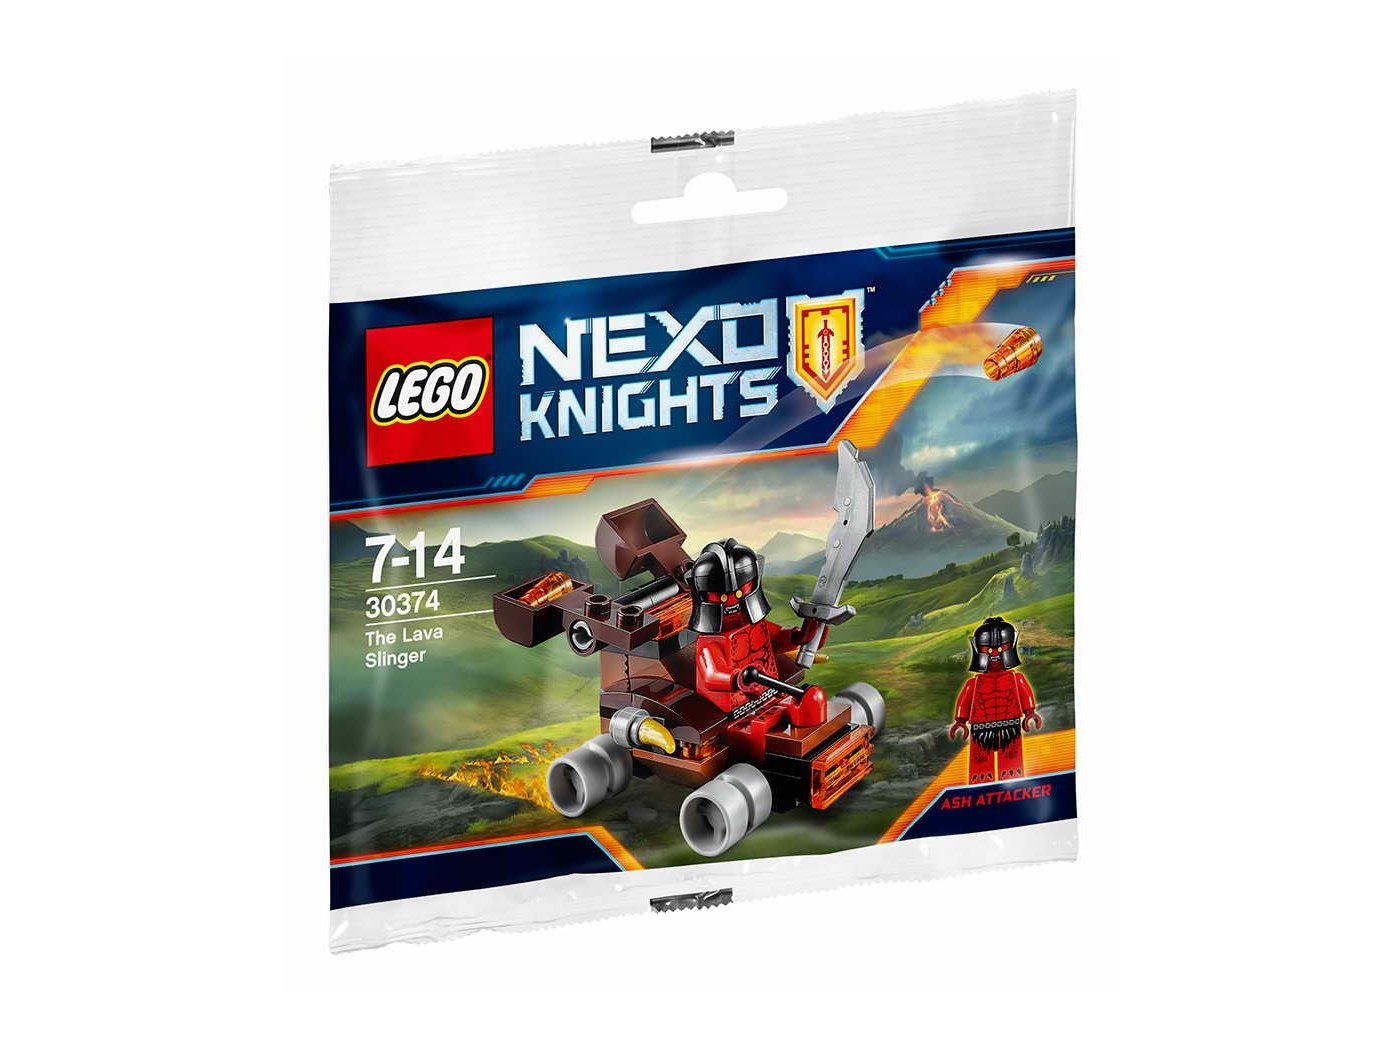 LEGO 30374 The Lava Slinger